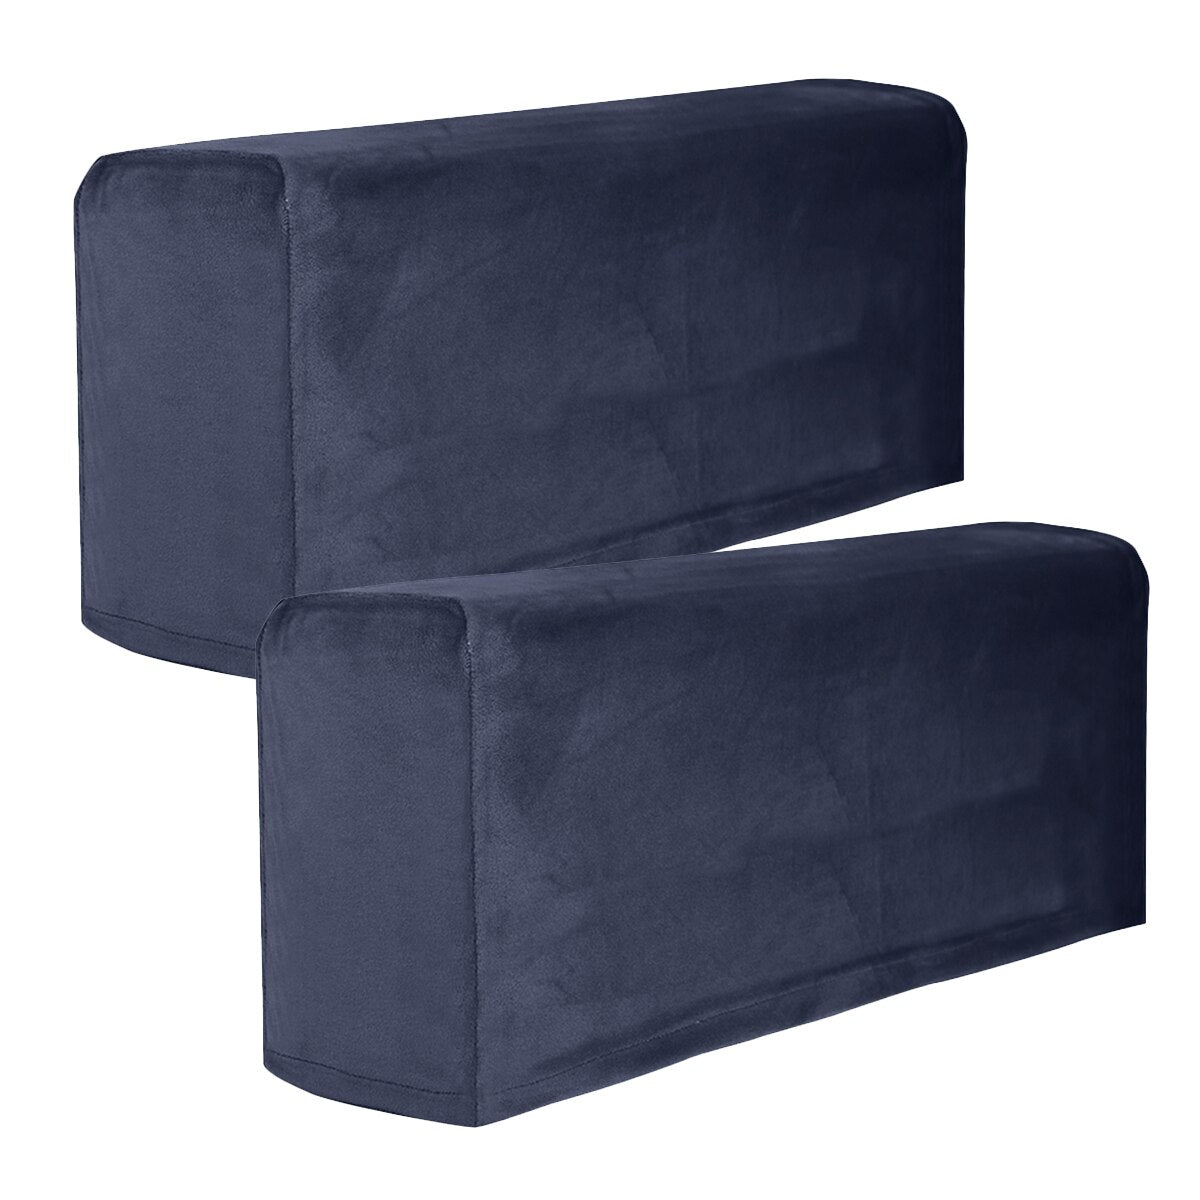 2Pcs Universal Sofa Armrest Cover Elastic Armrest Protector Solid Color Armrest Protective Cloth 1 Pair Sofa Covers Removable Arm Stretch Couch Chair Cover